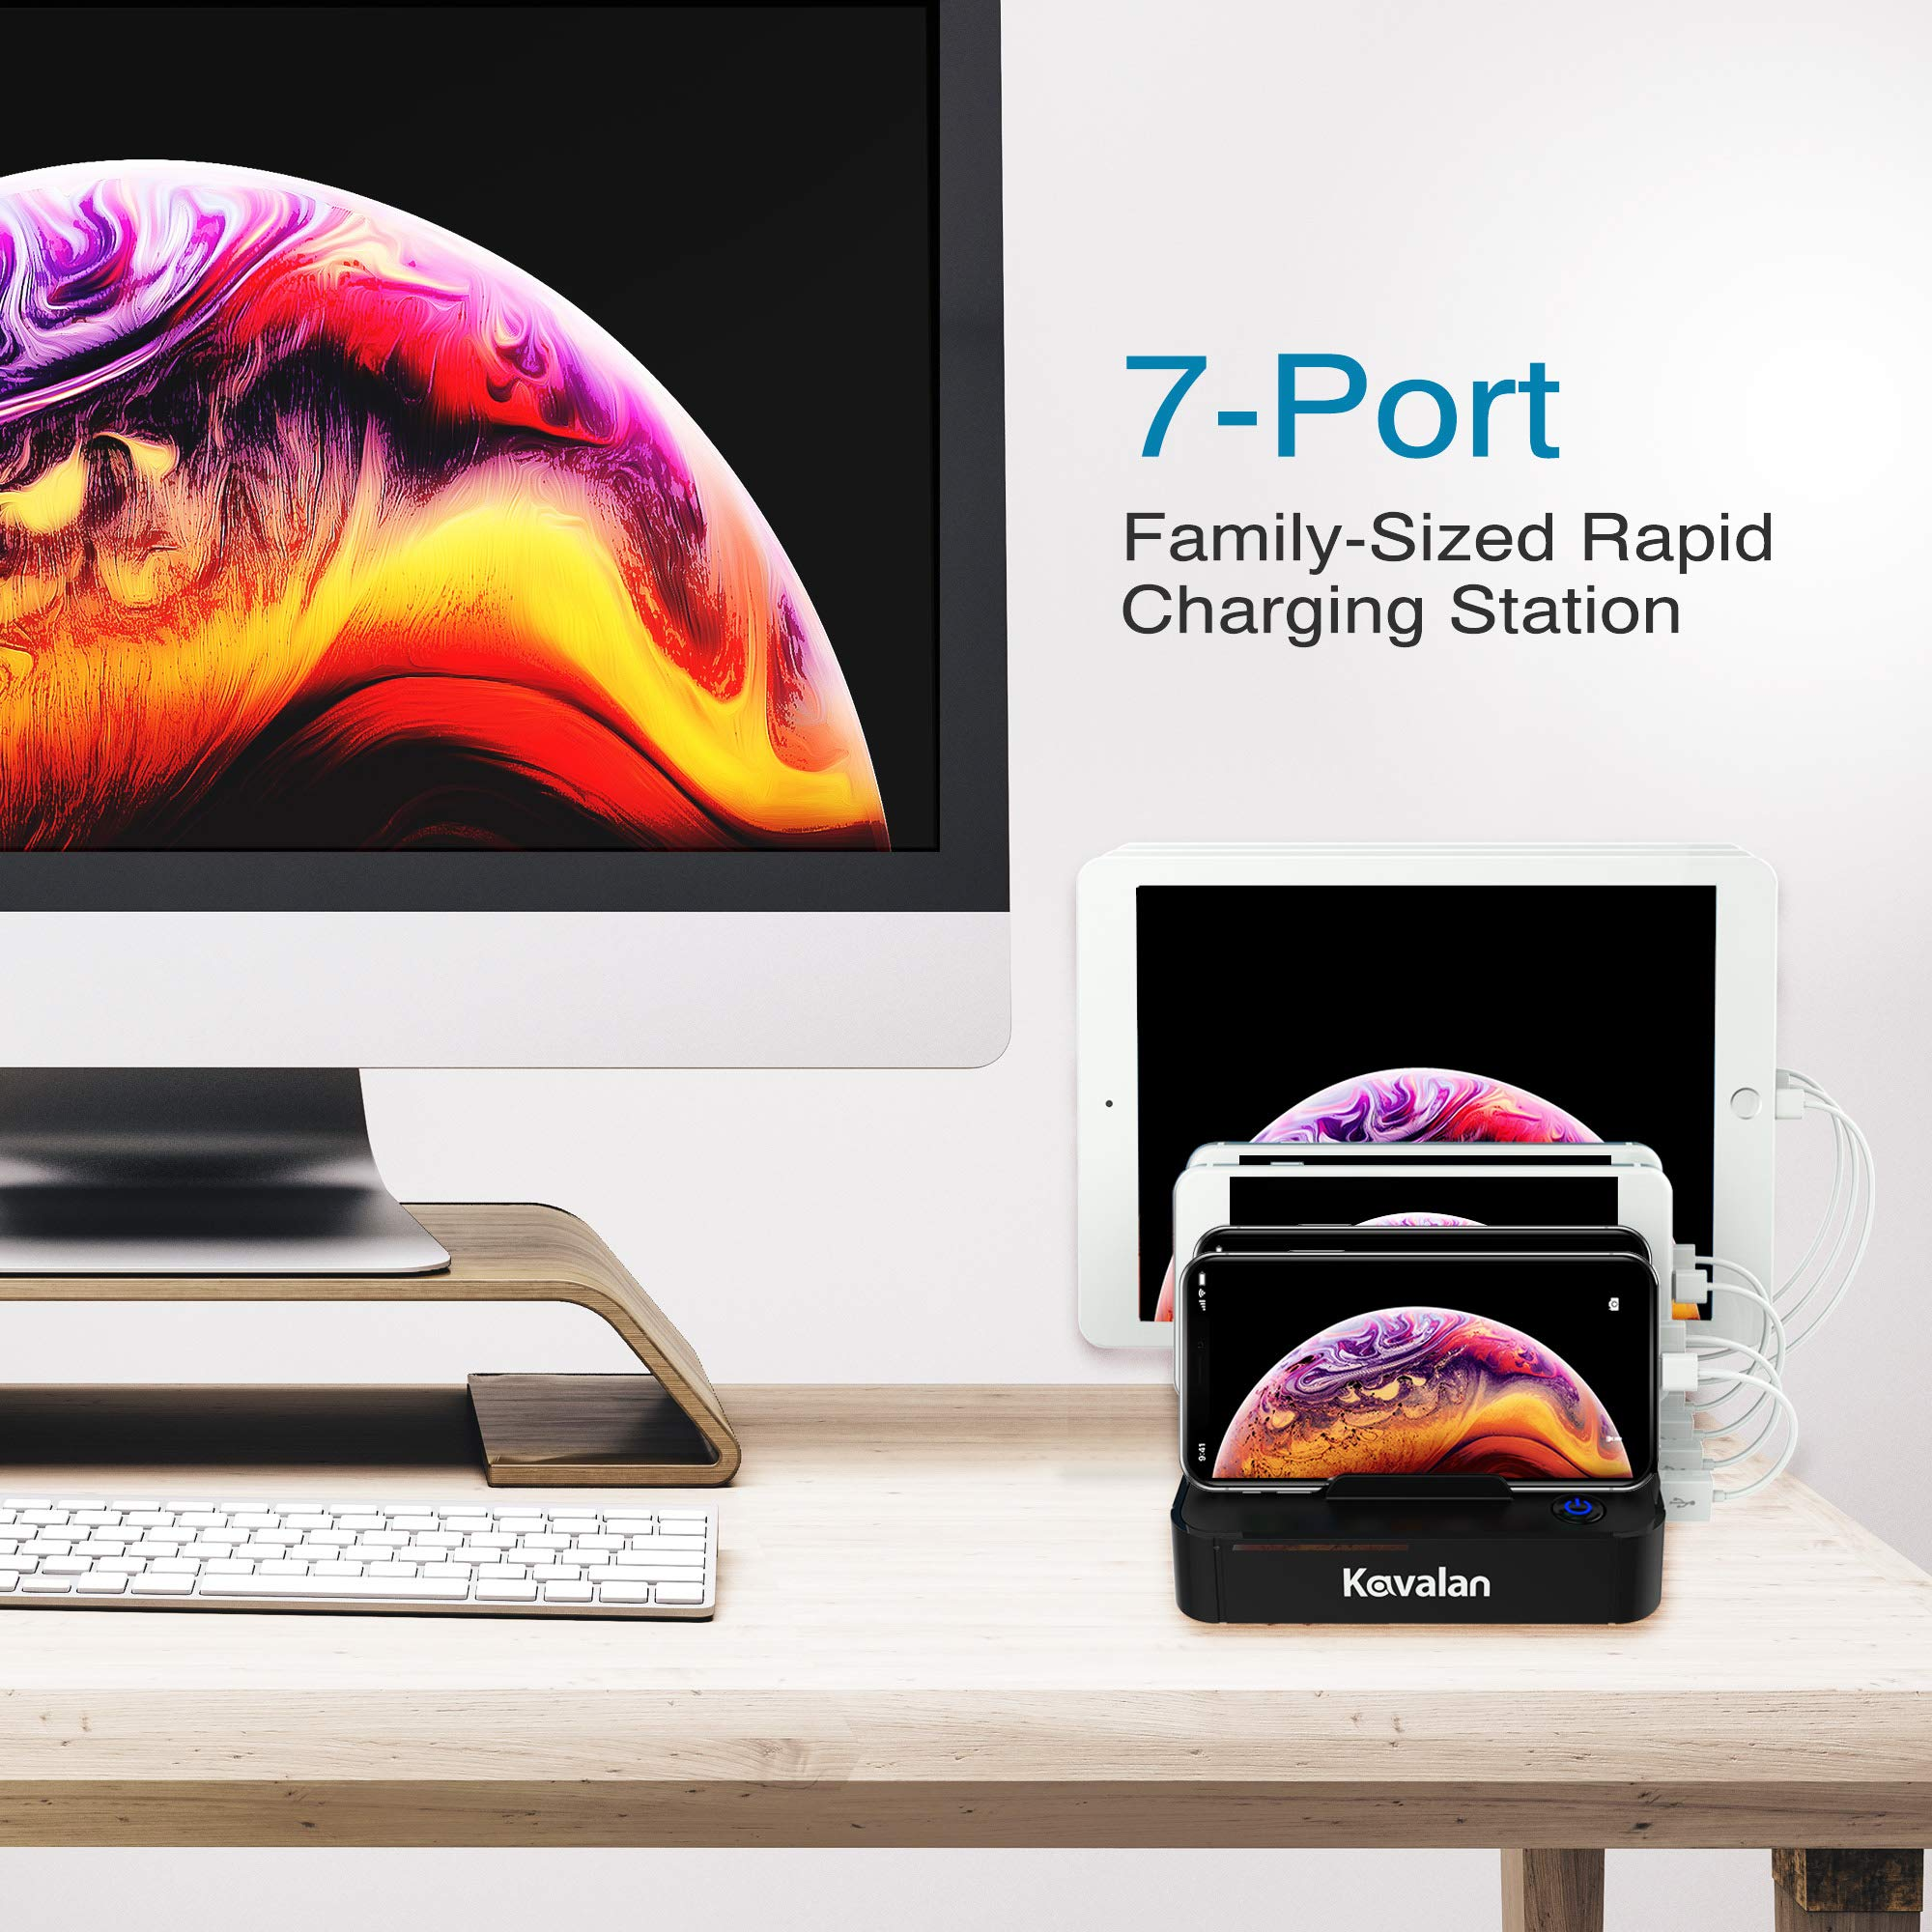 Kavalan 7 Port USB Charging Station Dock & Organizer with 2 Fast Charging Port, Universal Desktop Tablet & Smartphone Multi-Device Charger Hub with Smart Rapid Charging Ports_5 Cables Included